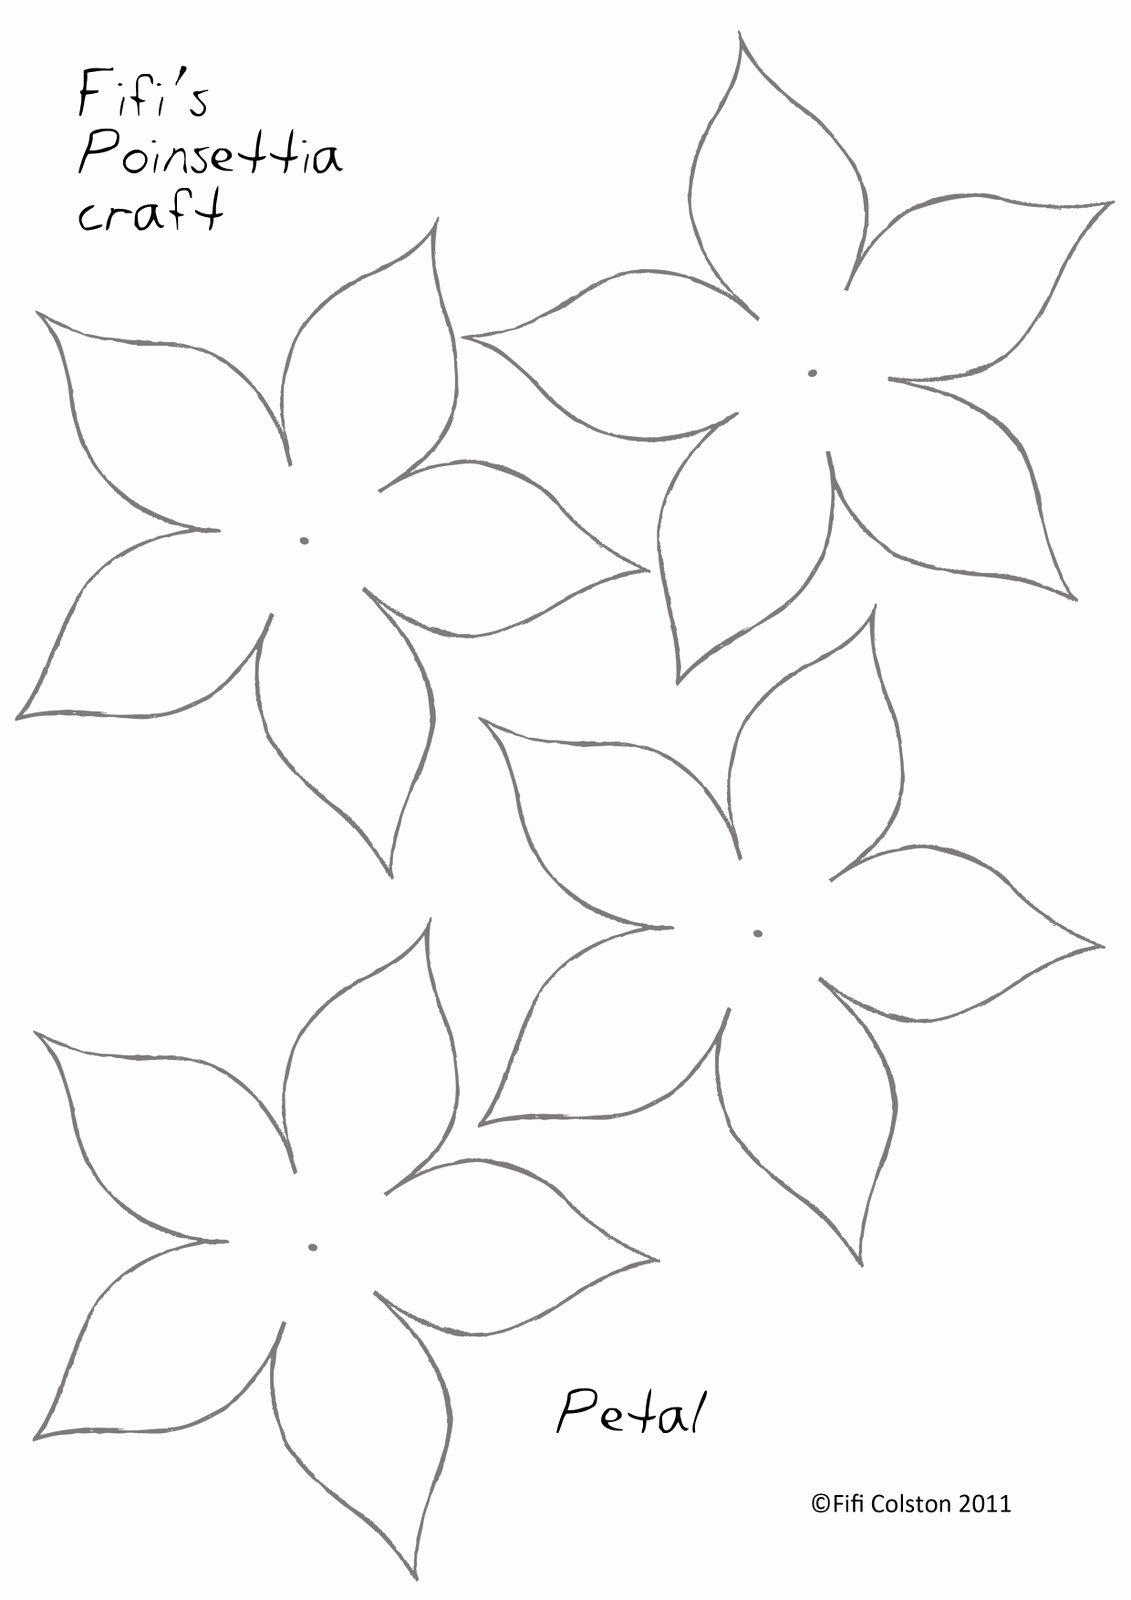 Paper Flower Template Printable Lovely Fifi Colston Creative Pretty Paper Poinsettias